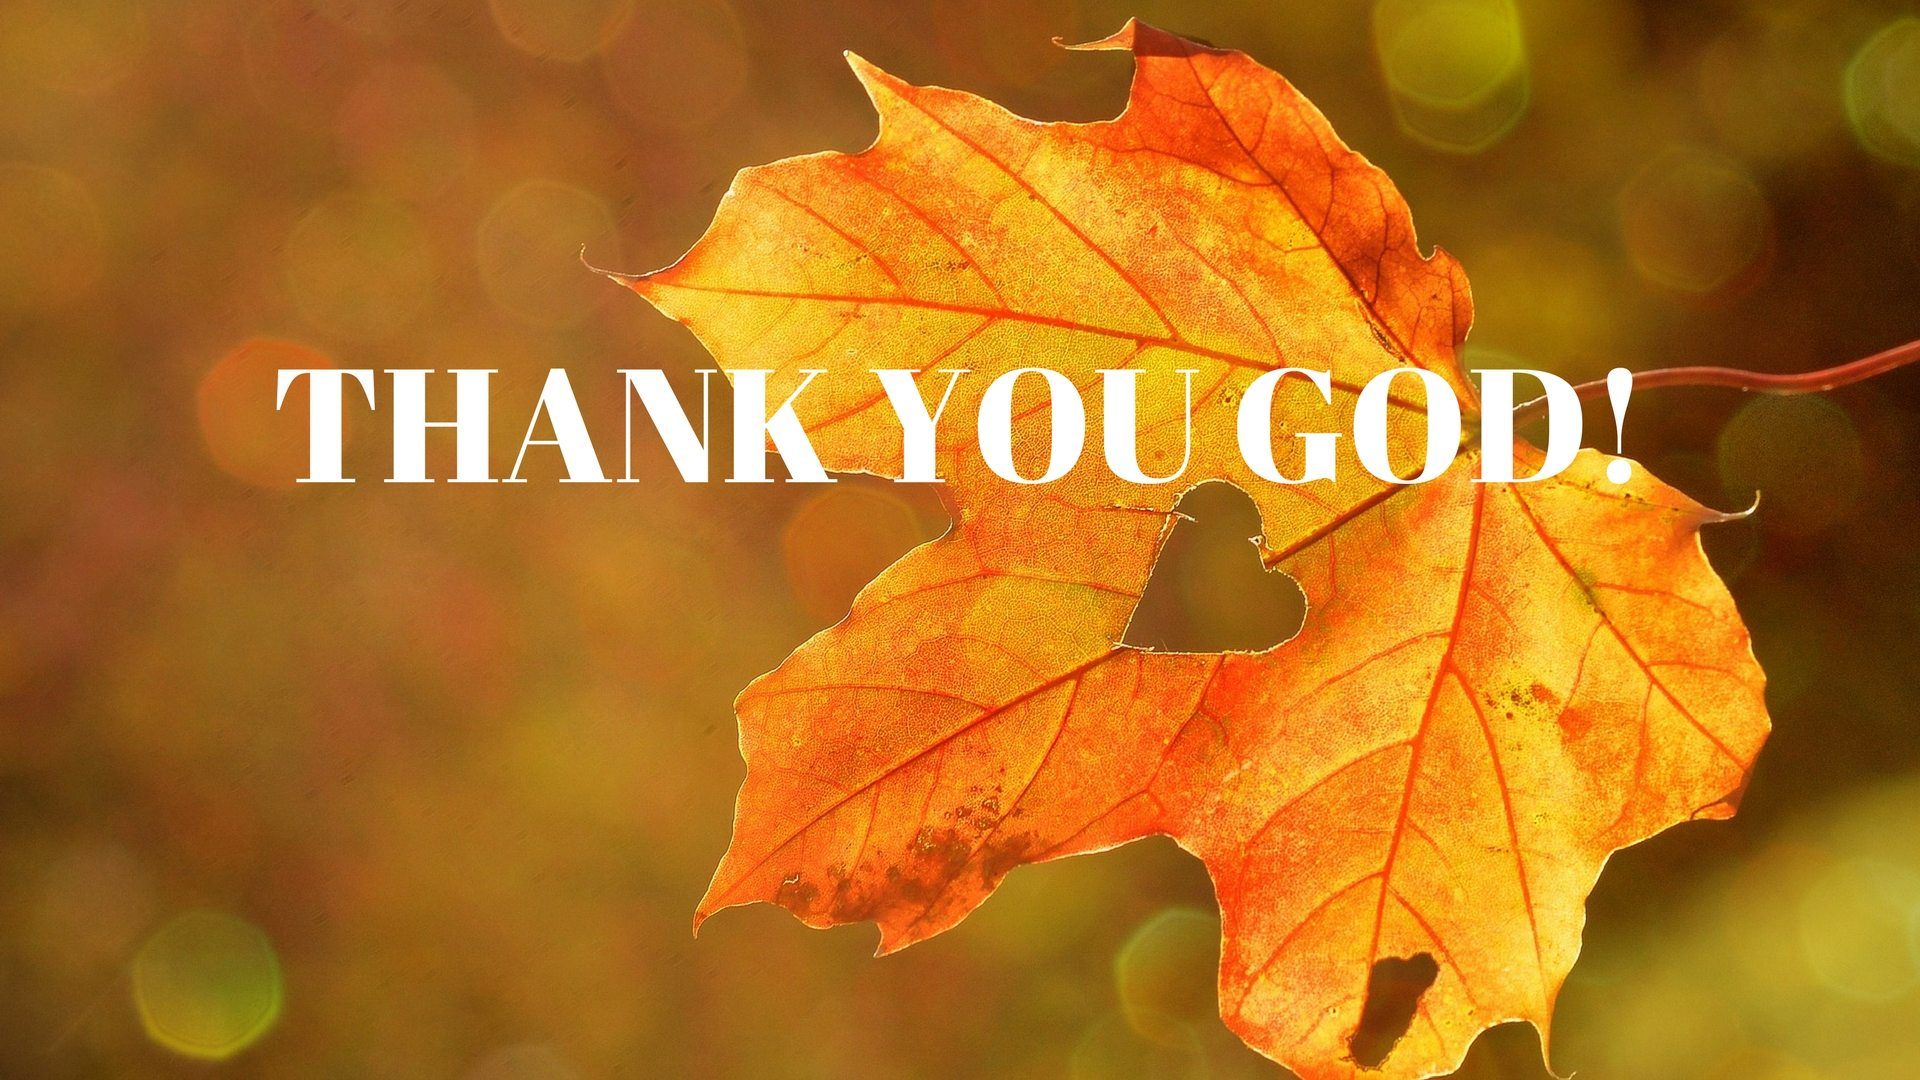 THANK YOU GOD! Say Thanks Pixabay - Canva